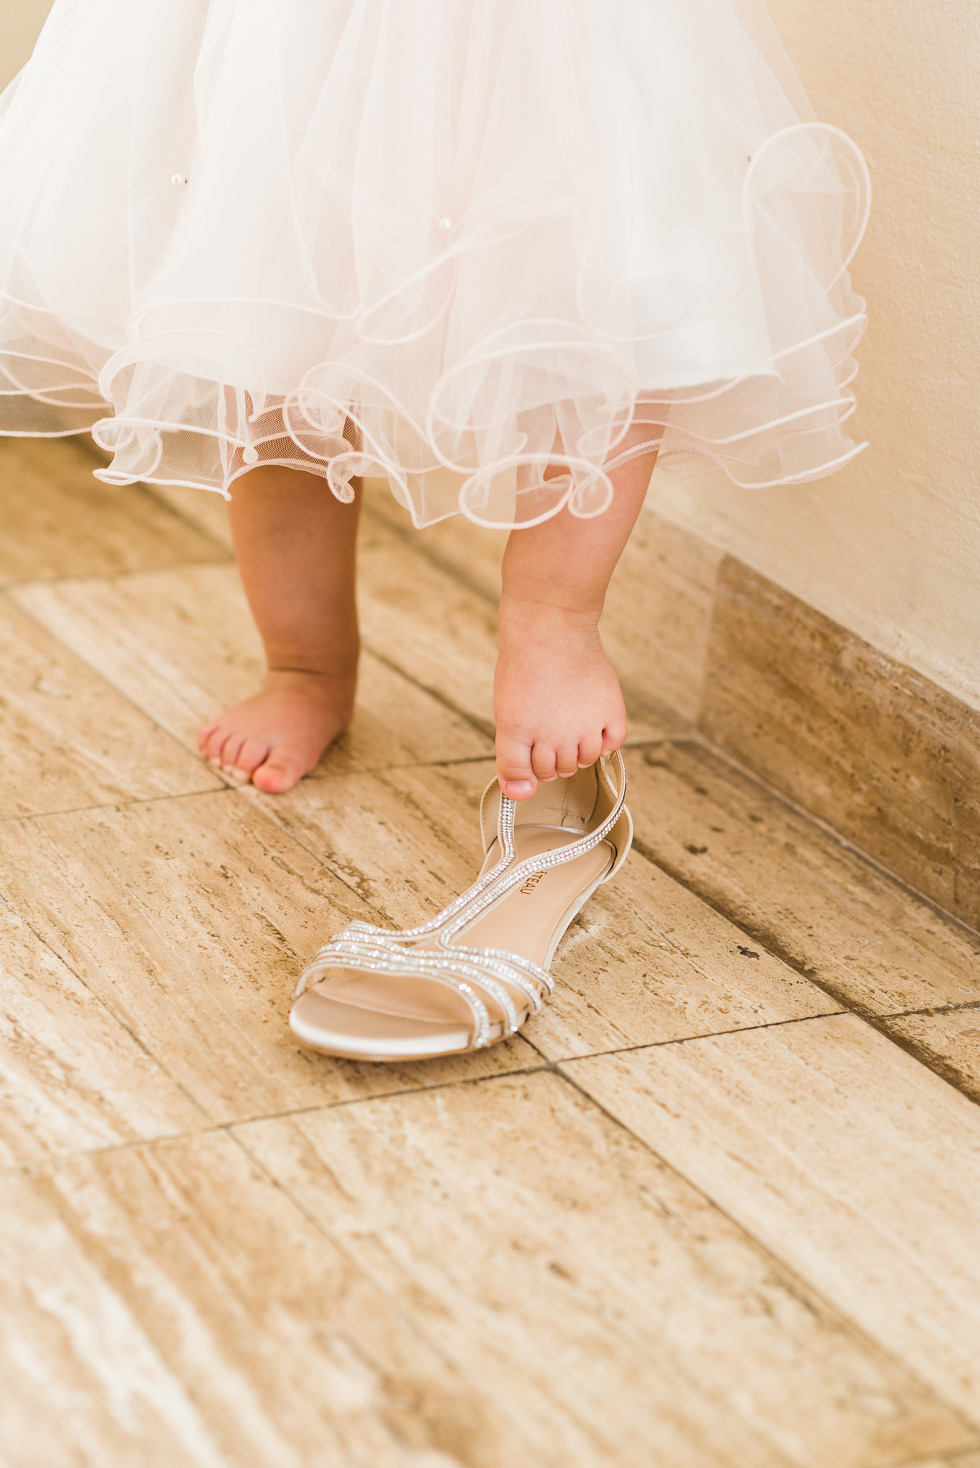 baby in a dress trying to get her foot into brides wedding shoe before ceremony at Now Sapphire Resort in Mexico